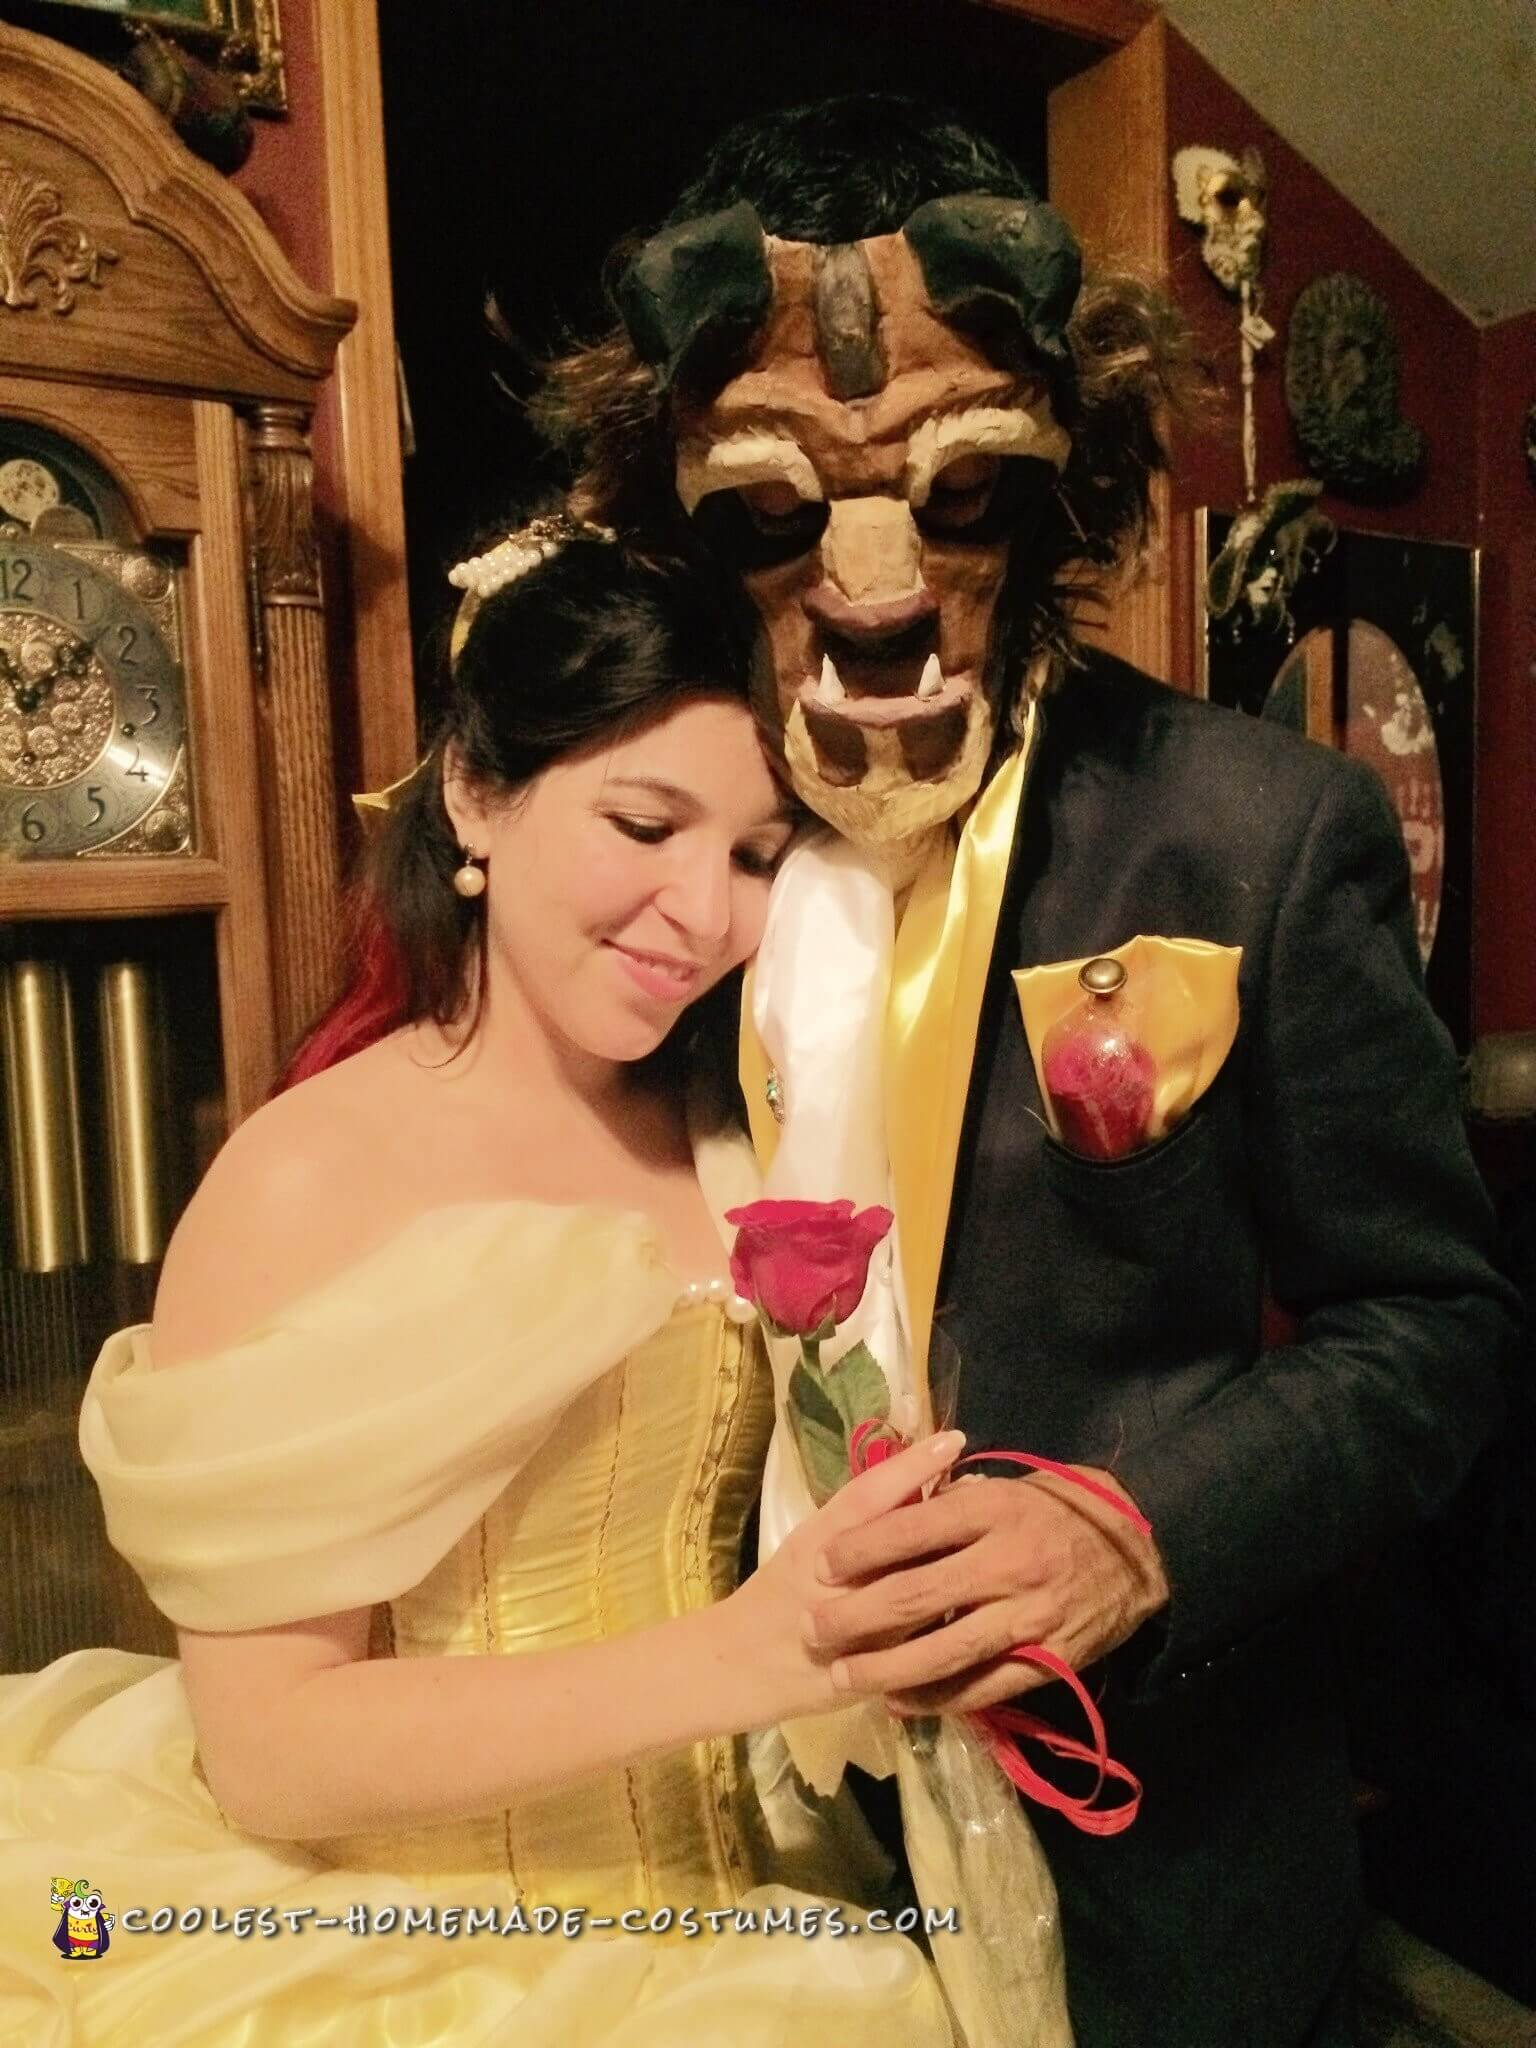 beauty and the beast funny halloween costume for couple